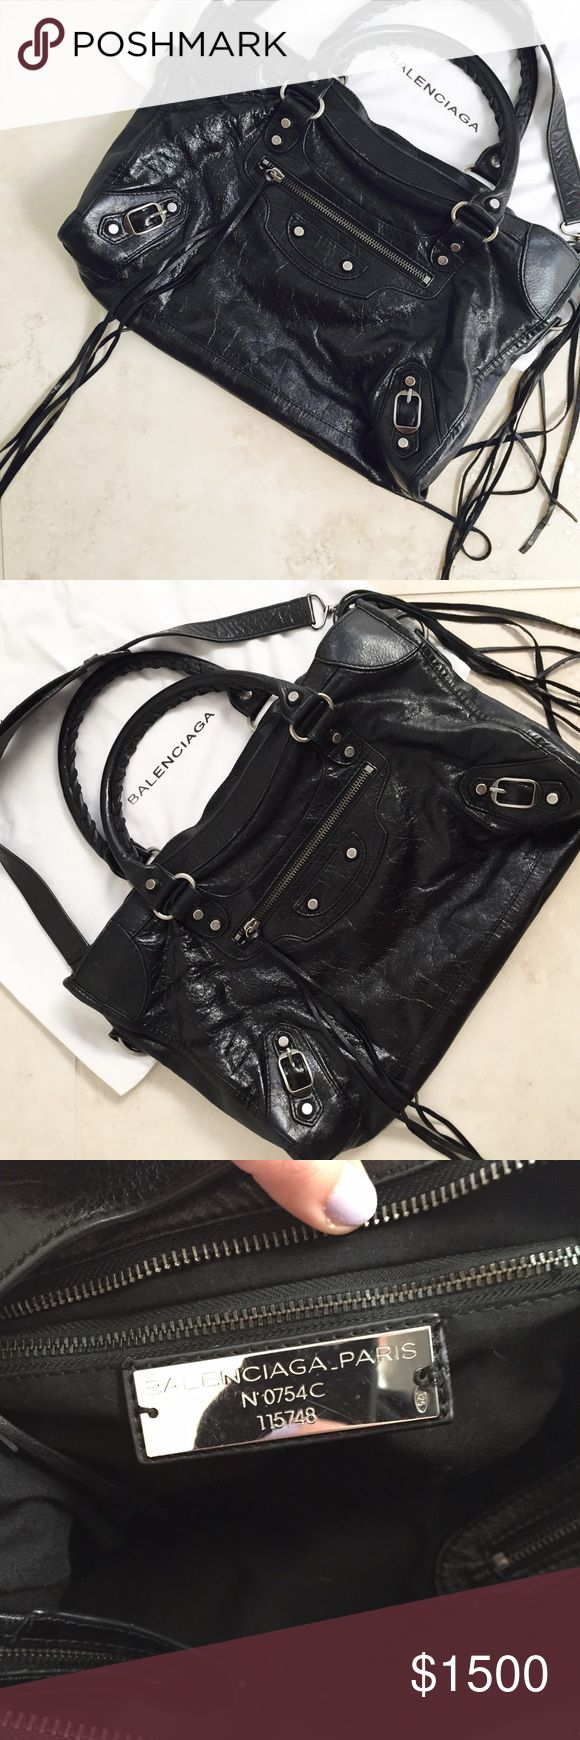 Balenciaga Classic City Bag Balenciaga Classic City Bag (Small)  • EUC • loose thread & minor scratching on     label plate (photo #3) are the only signs of wear  • comes with dust bag (signs of wear on dust bag include a small tear and some minor staining)  ✖️ NO TRADES ✖️ Reasonable offers welcome. Balenciaga Bags Satchels